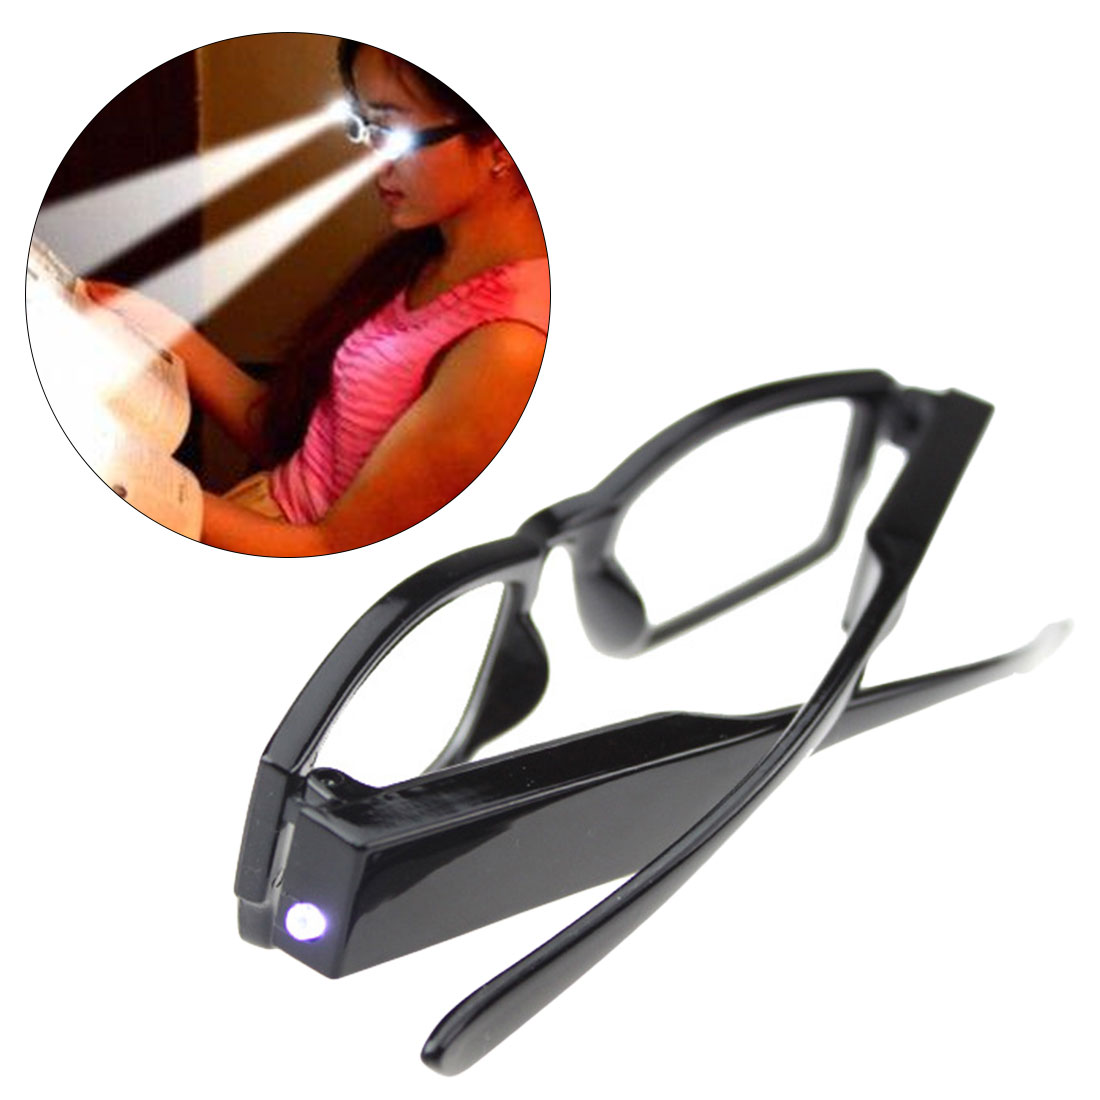 Multi Strength LED Reading Eyeglass Glasses Spectacle Diopter Magnifier Light UP 1 00 4 00 Diopter lentes de lectura hombre in Men 39 s Reading Glasses from Apparel Accessories